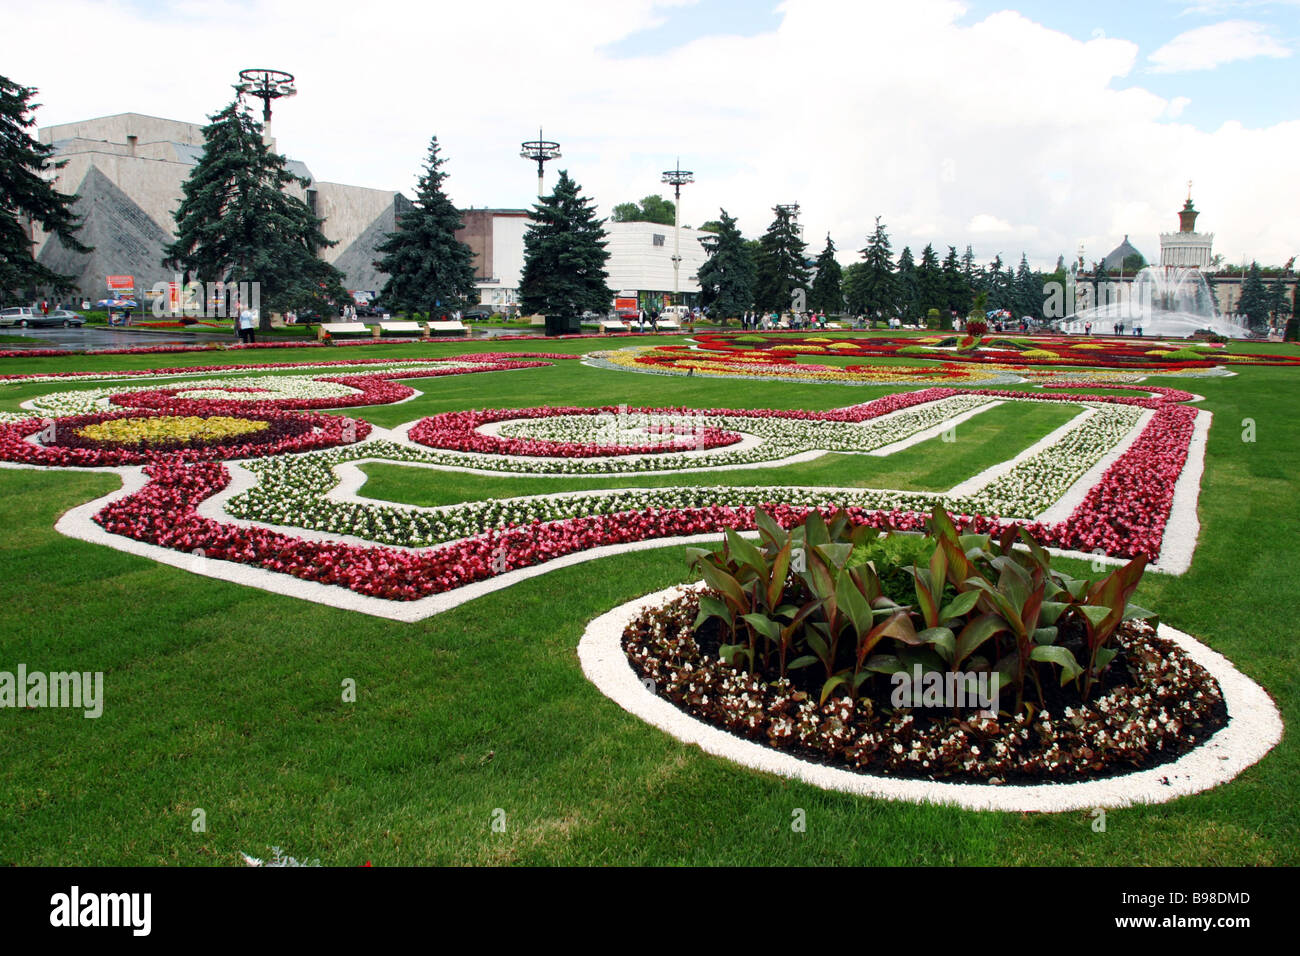 The 3rd Moscow festival of flowerbeds and landscape design dedicated